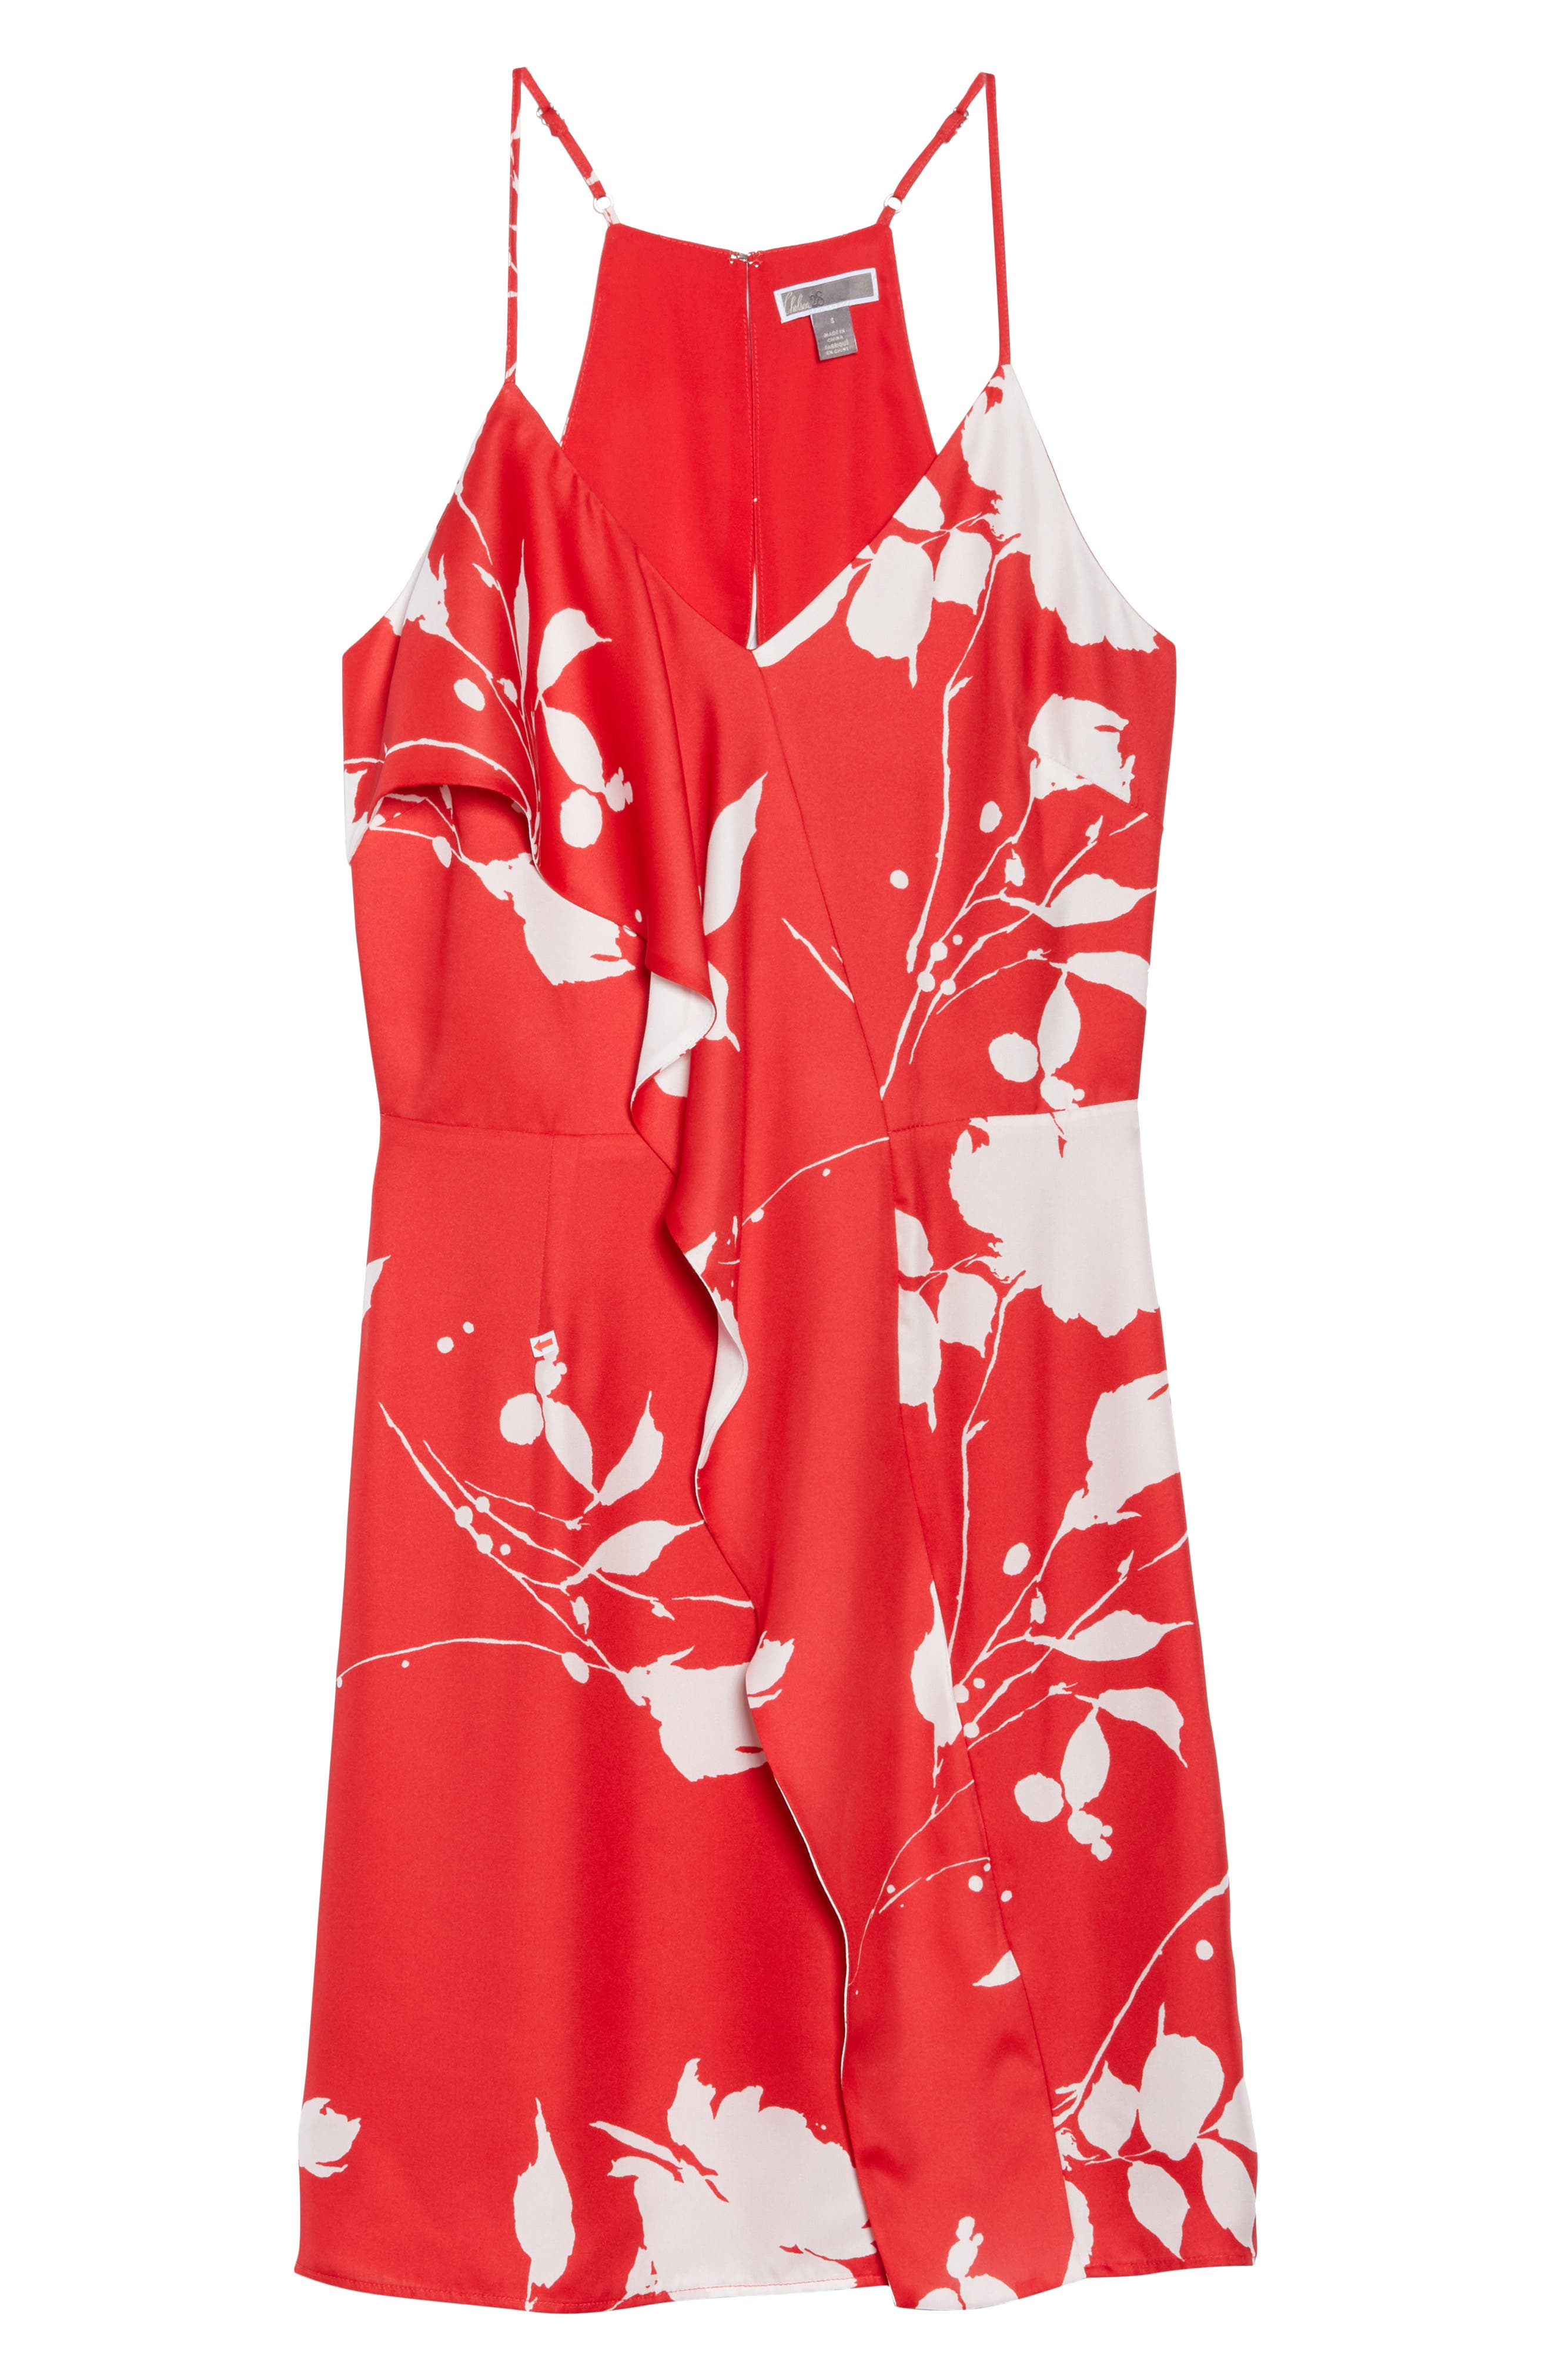 Floral Ruffle Front Sheath Dress,                             Alternate thumbnail 7, color,                             Red White Poppy